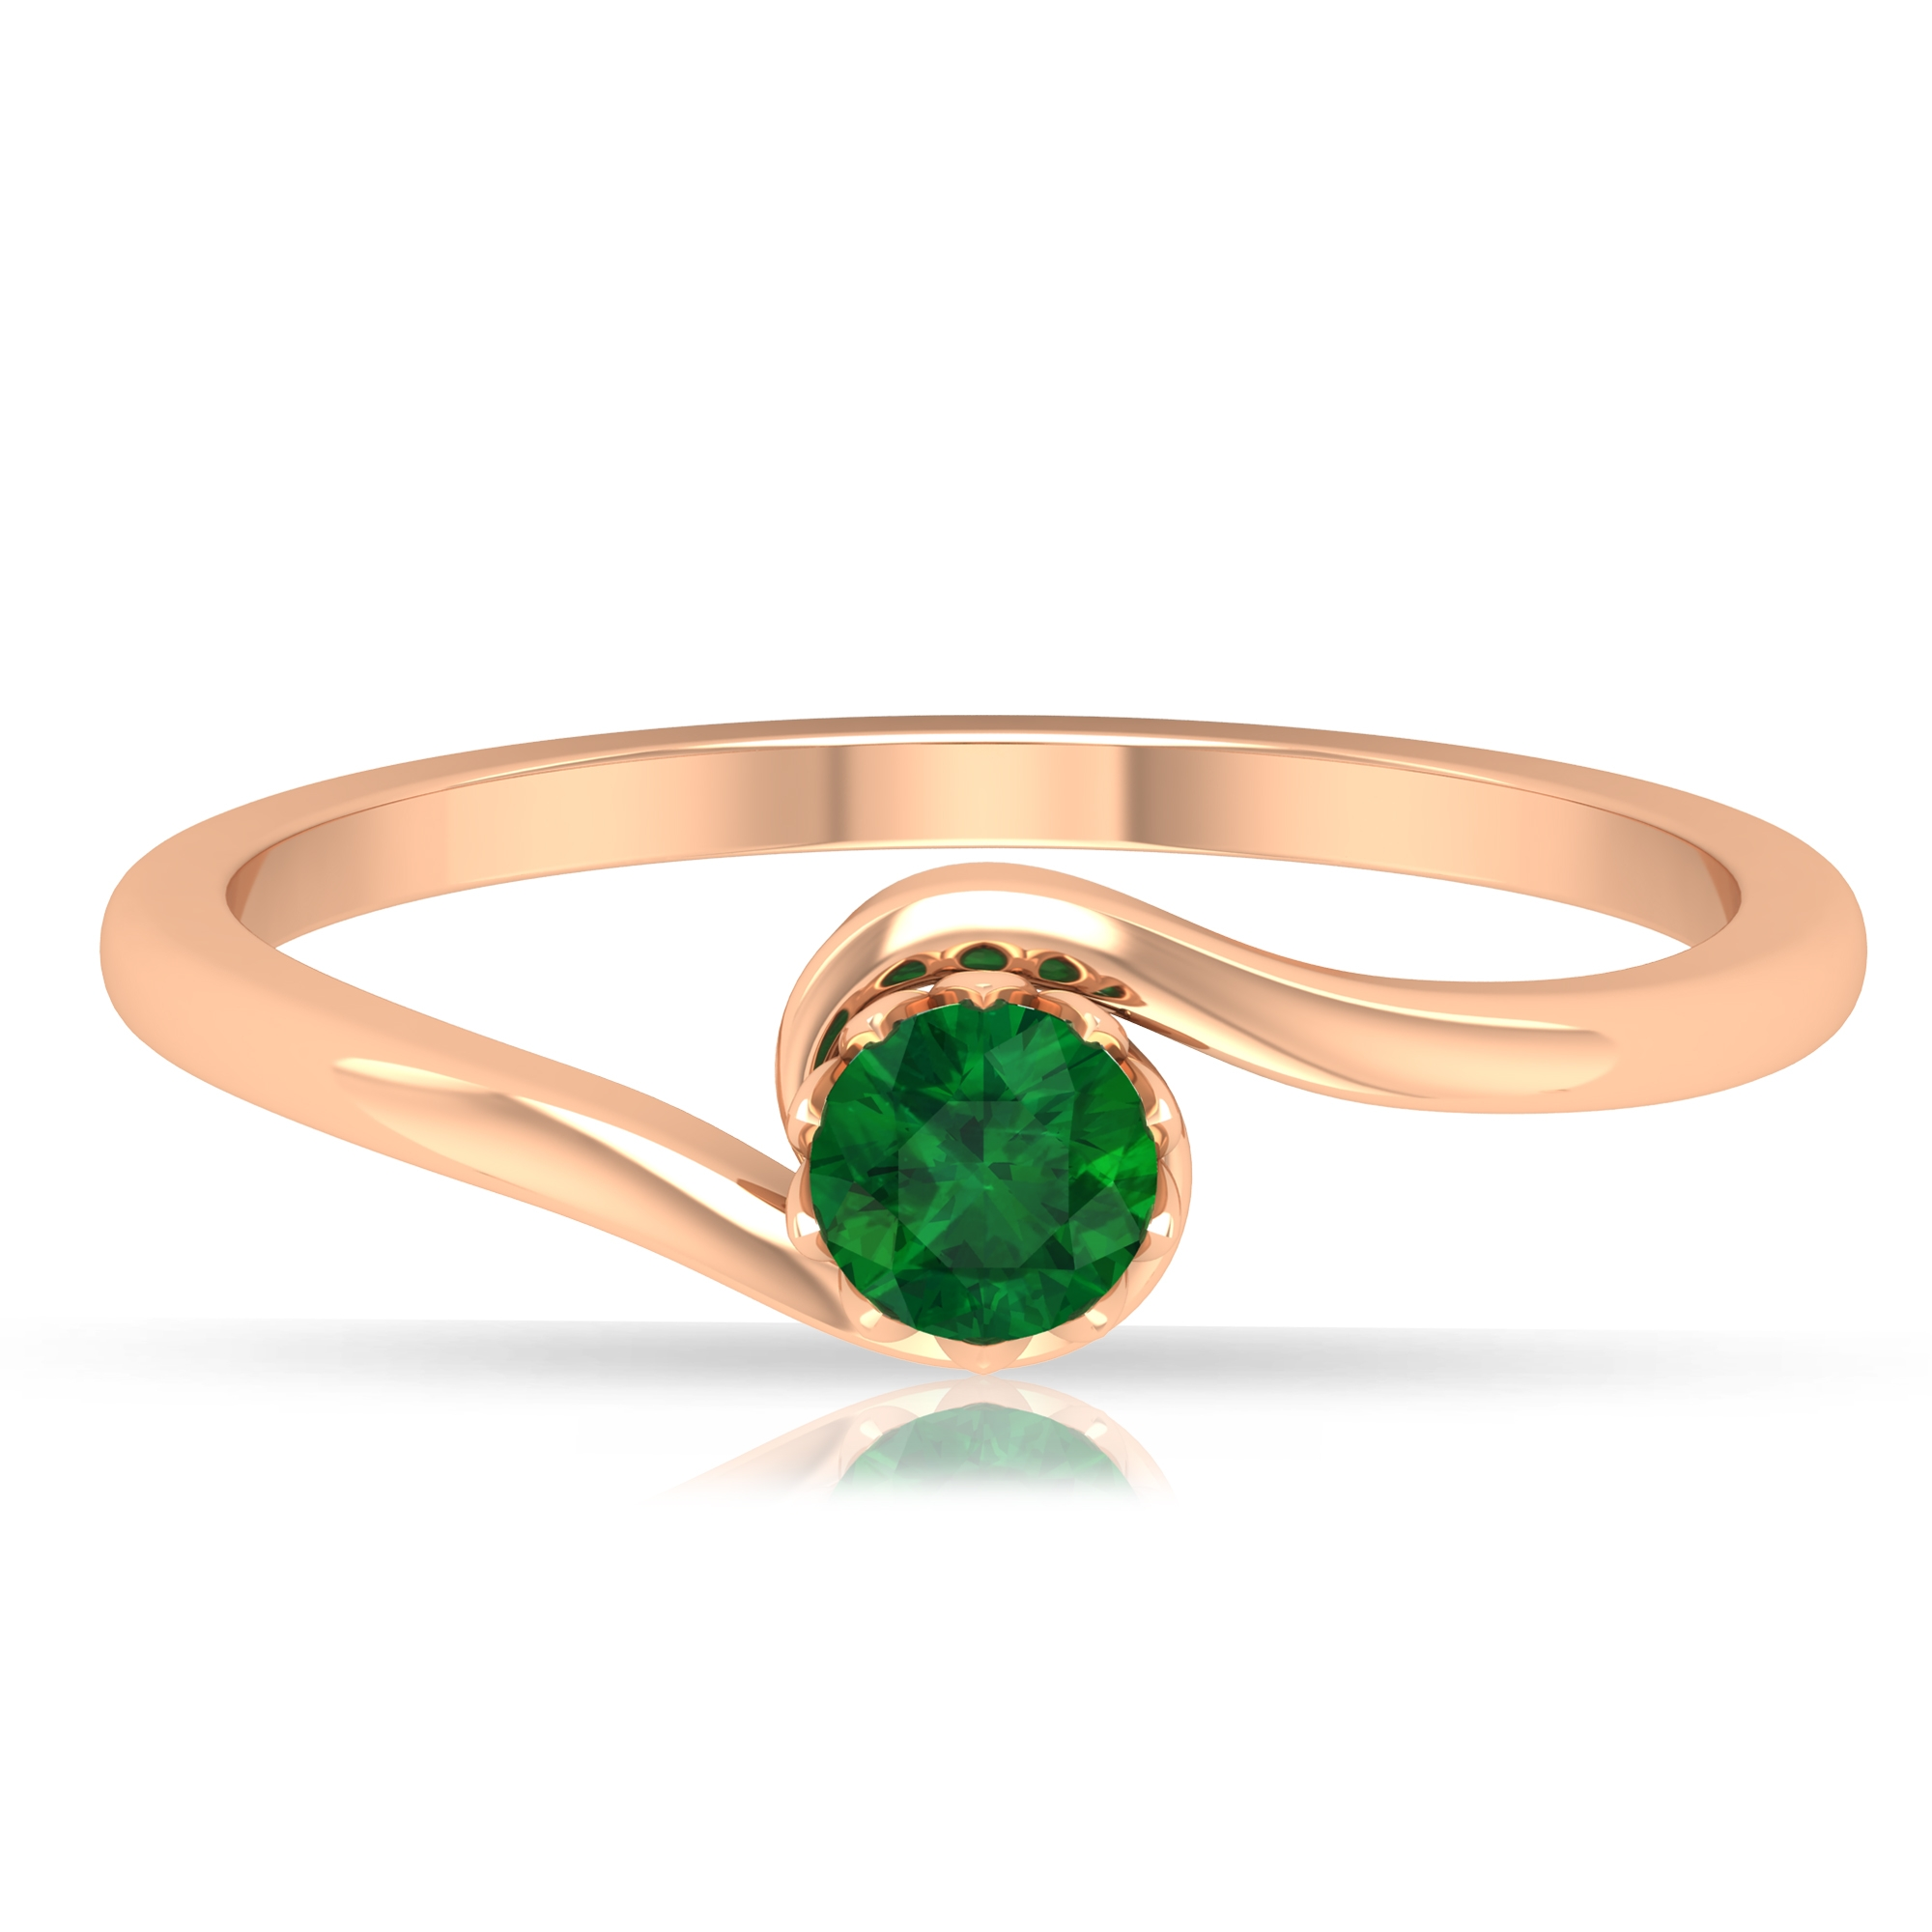 May Birthstone 4 MM Emerald Solitaire Ring in Lotus Basket Setting with Bypass Shank